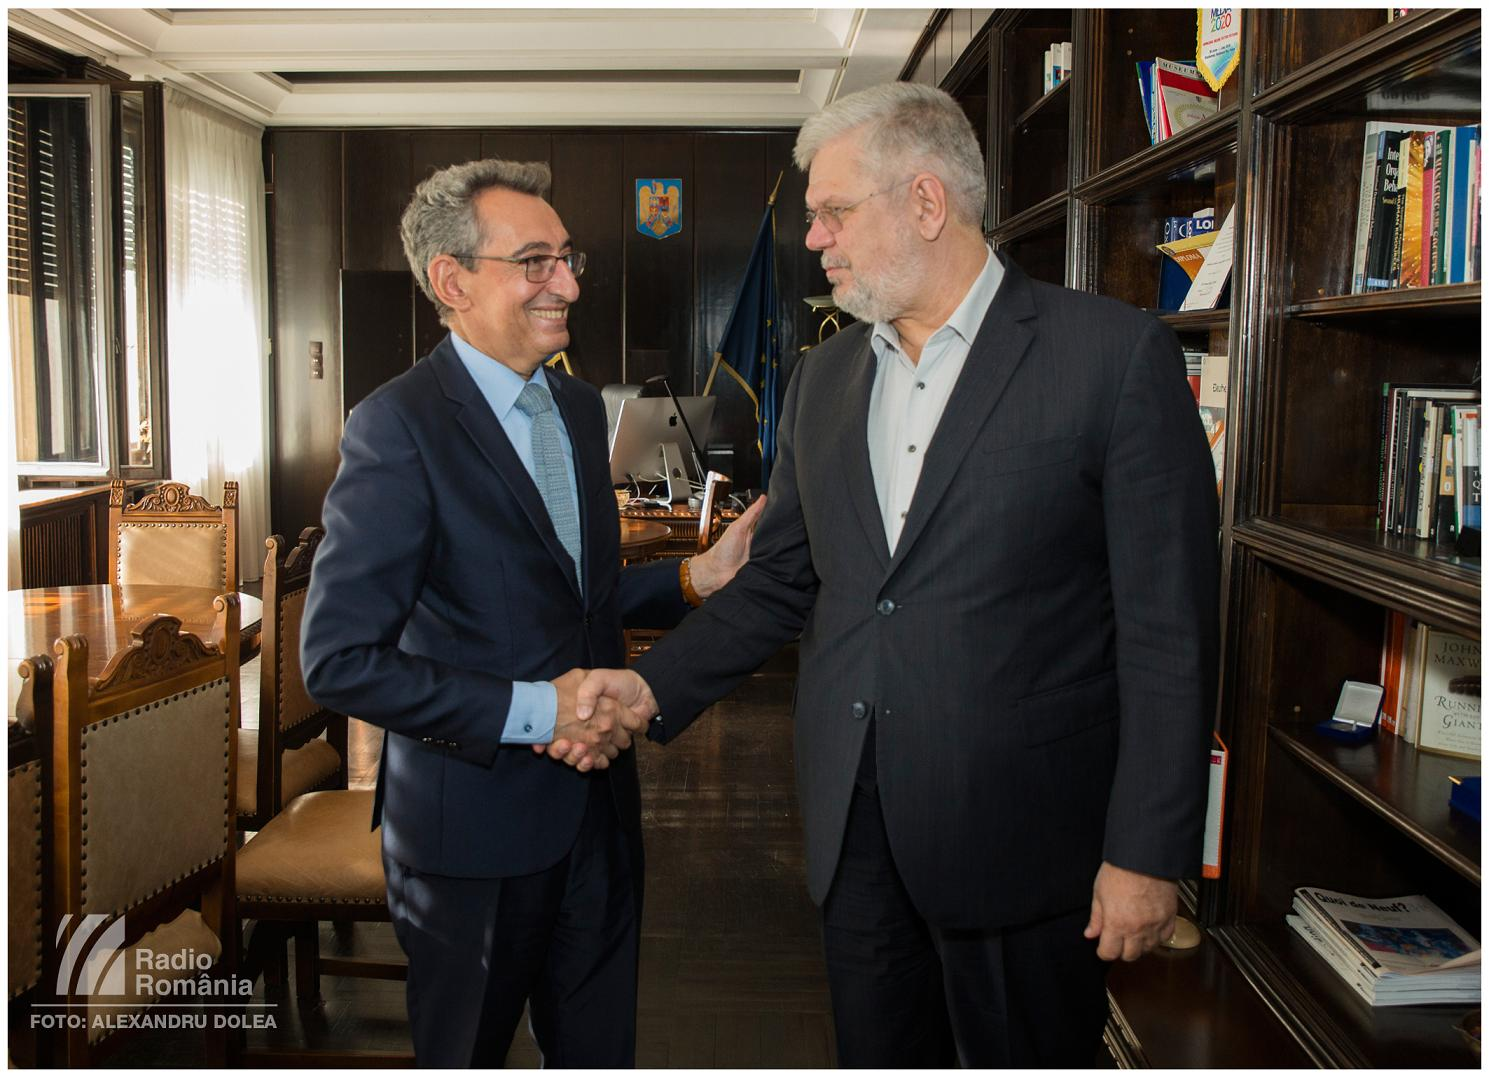 ambassador-of-uruguay-to-bucharest-visits-radio-romania